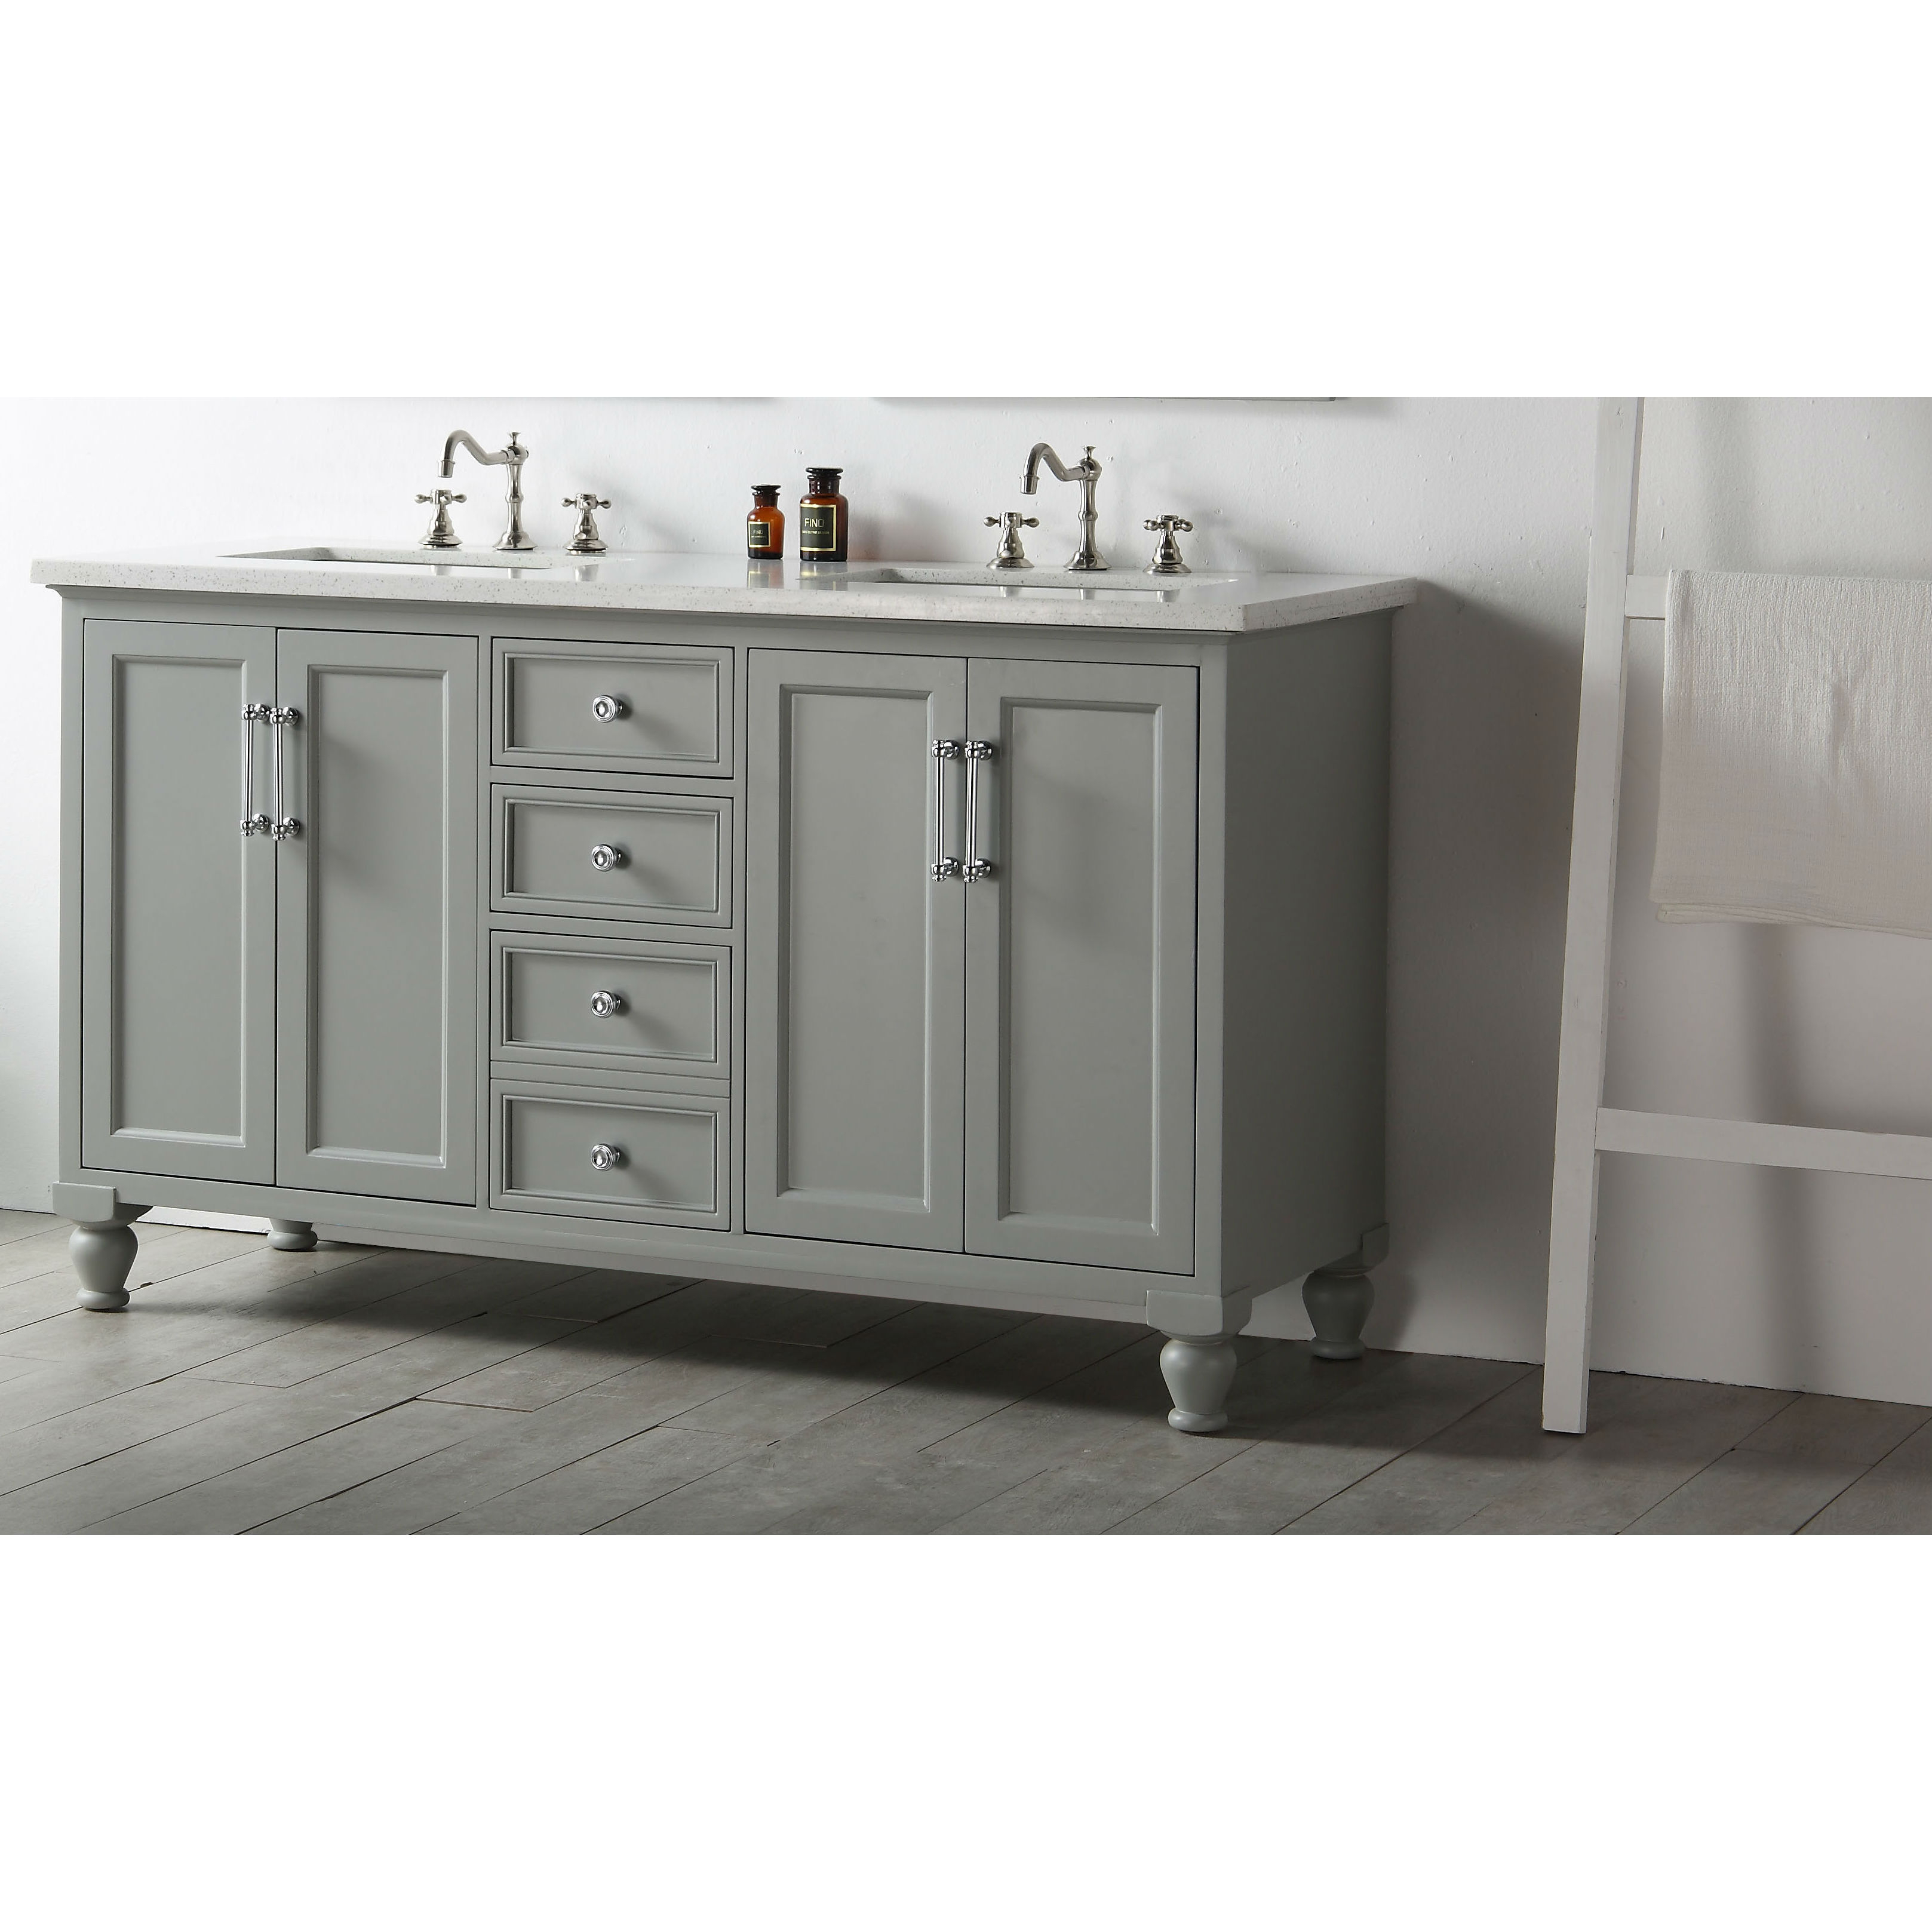 Drop Dead Gorgeous Bathroom Vanity Furniture Style Grey Within Arminta Wood Sideboards (Photo 30 of 30)